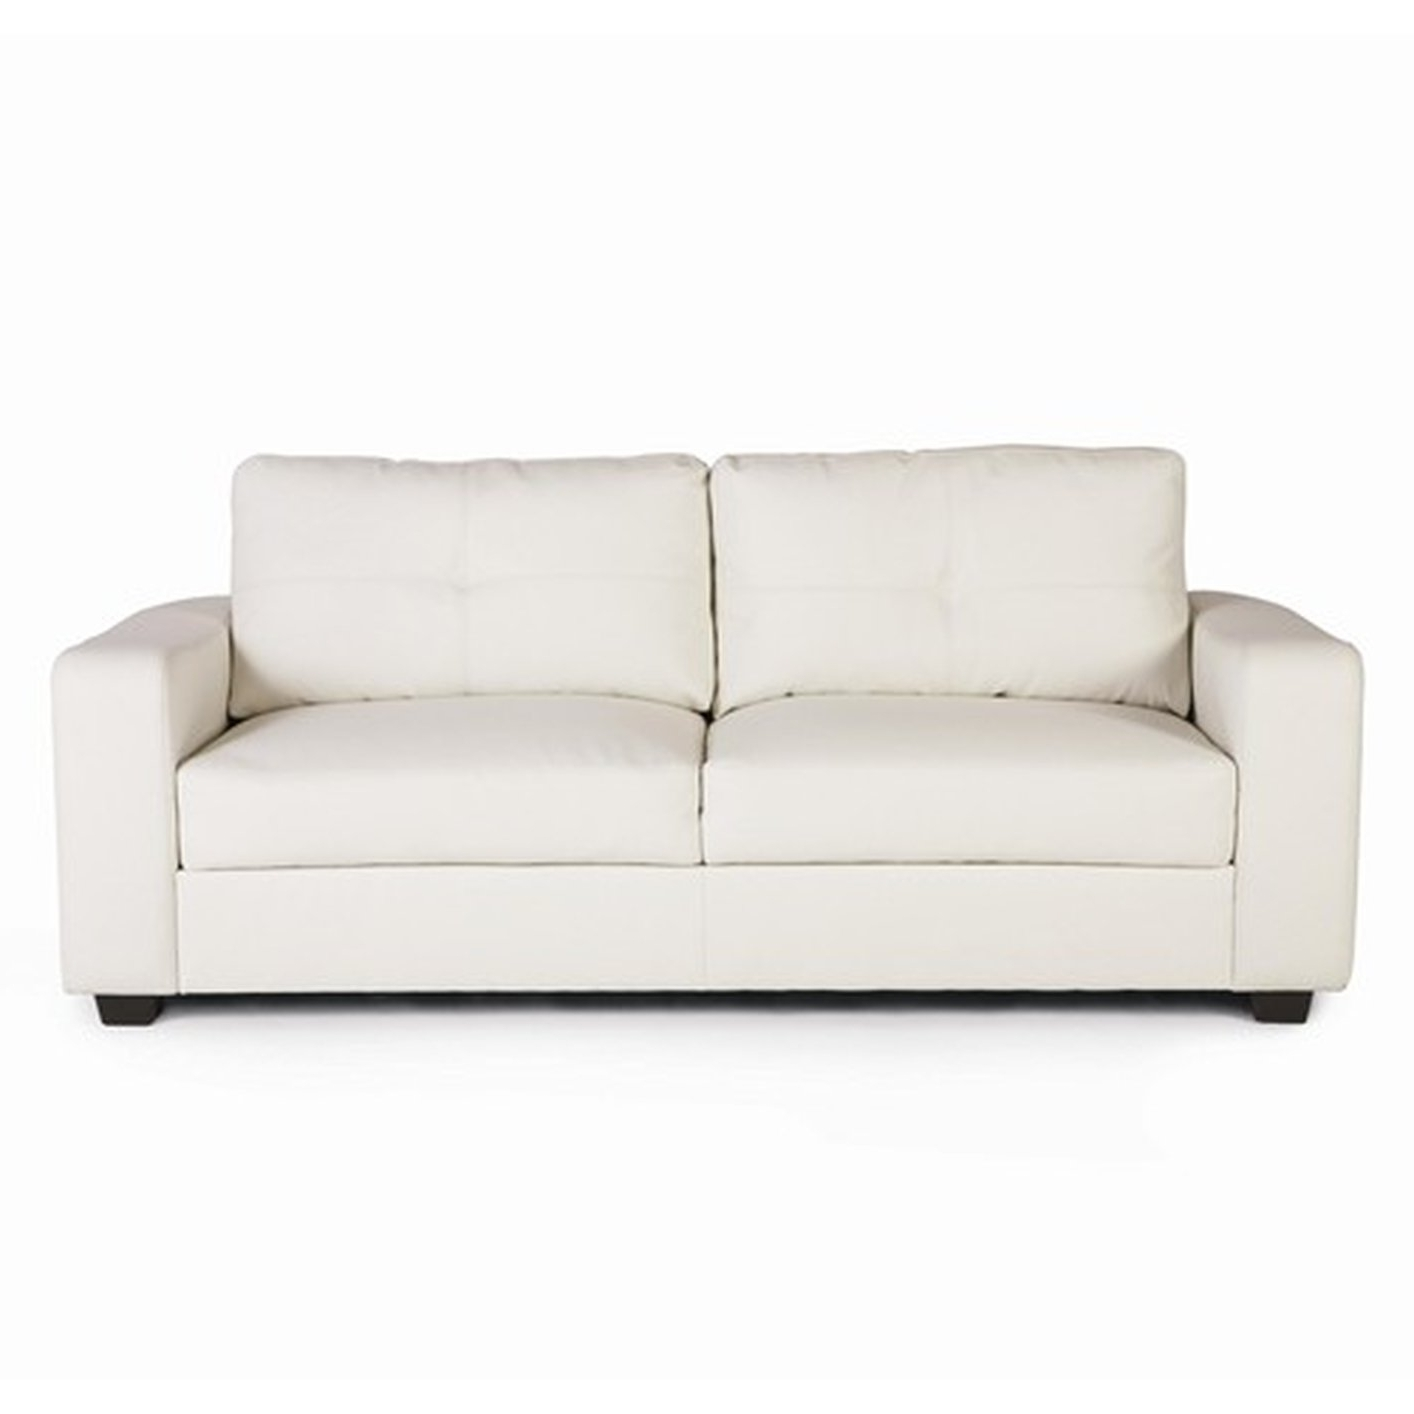 2018 Jasmine White Leather Sofa – Steal A Sofa Furniture Outlet Los Pertaining To White Sofa Chairs (View 1 of 20)